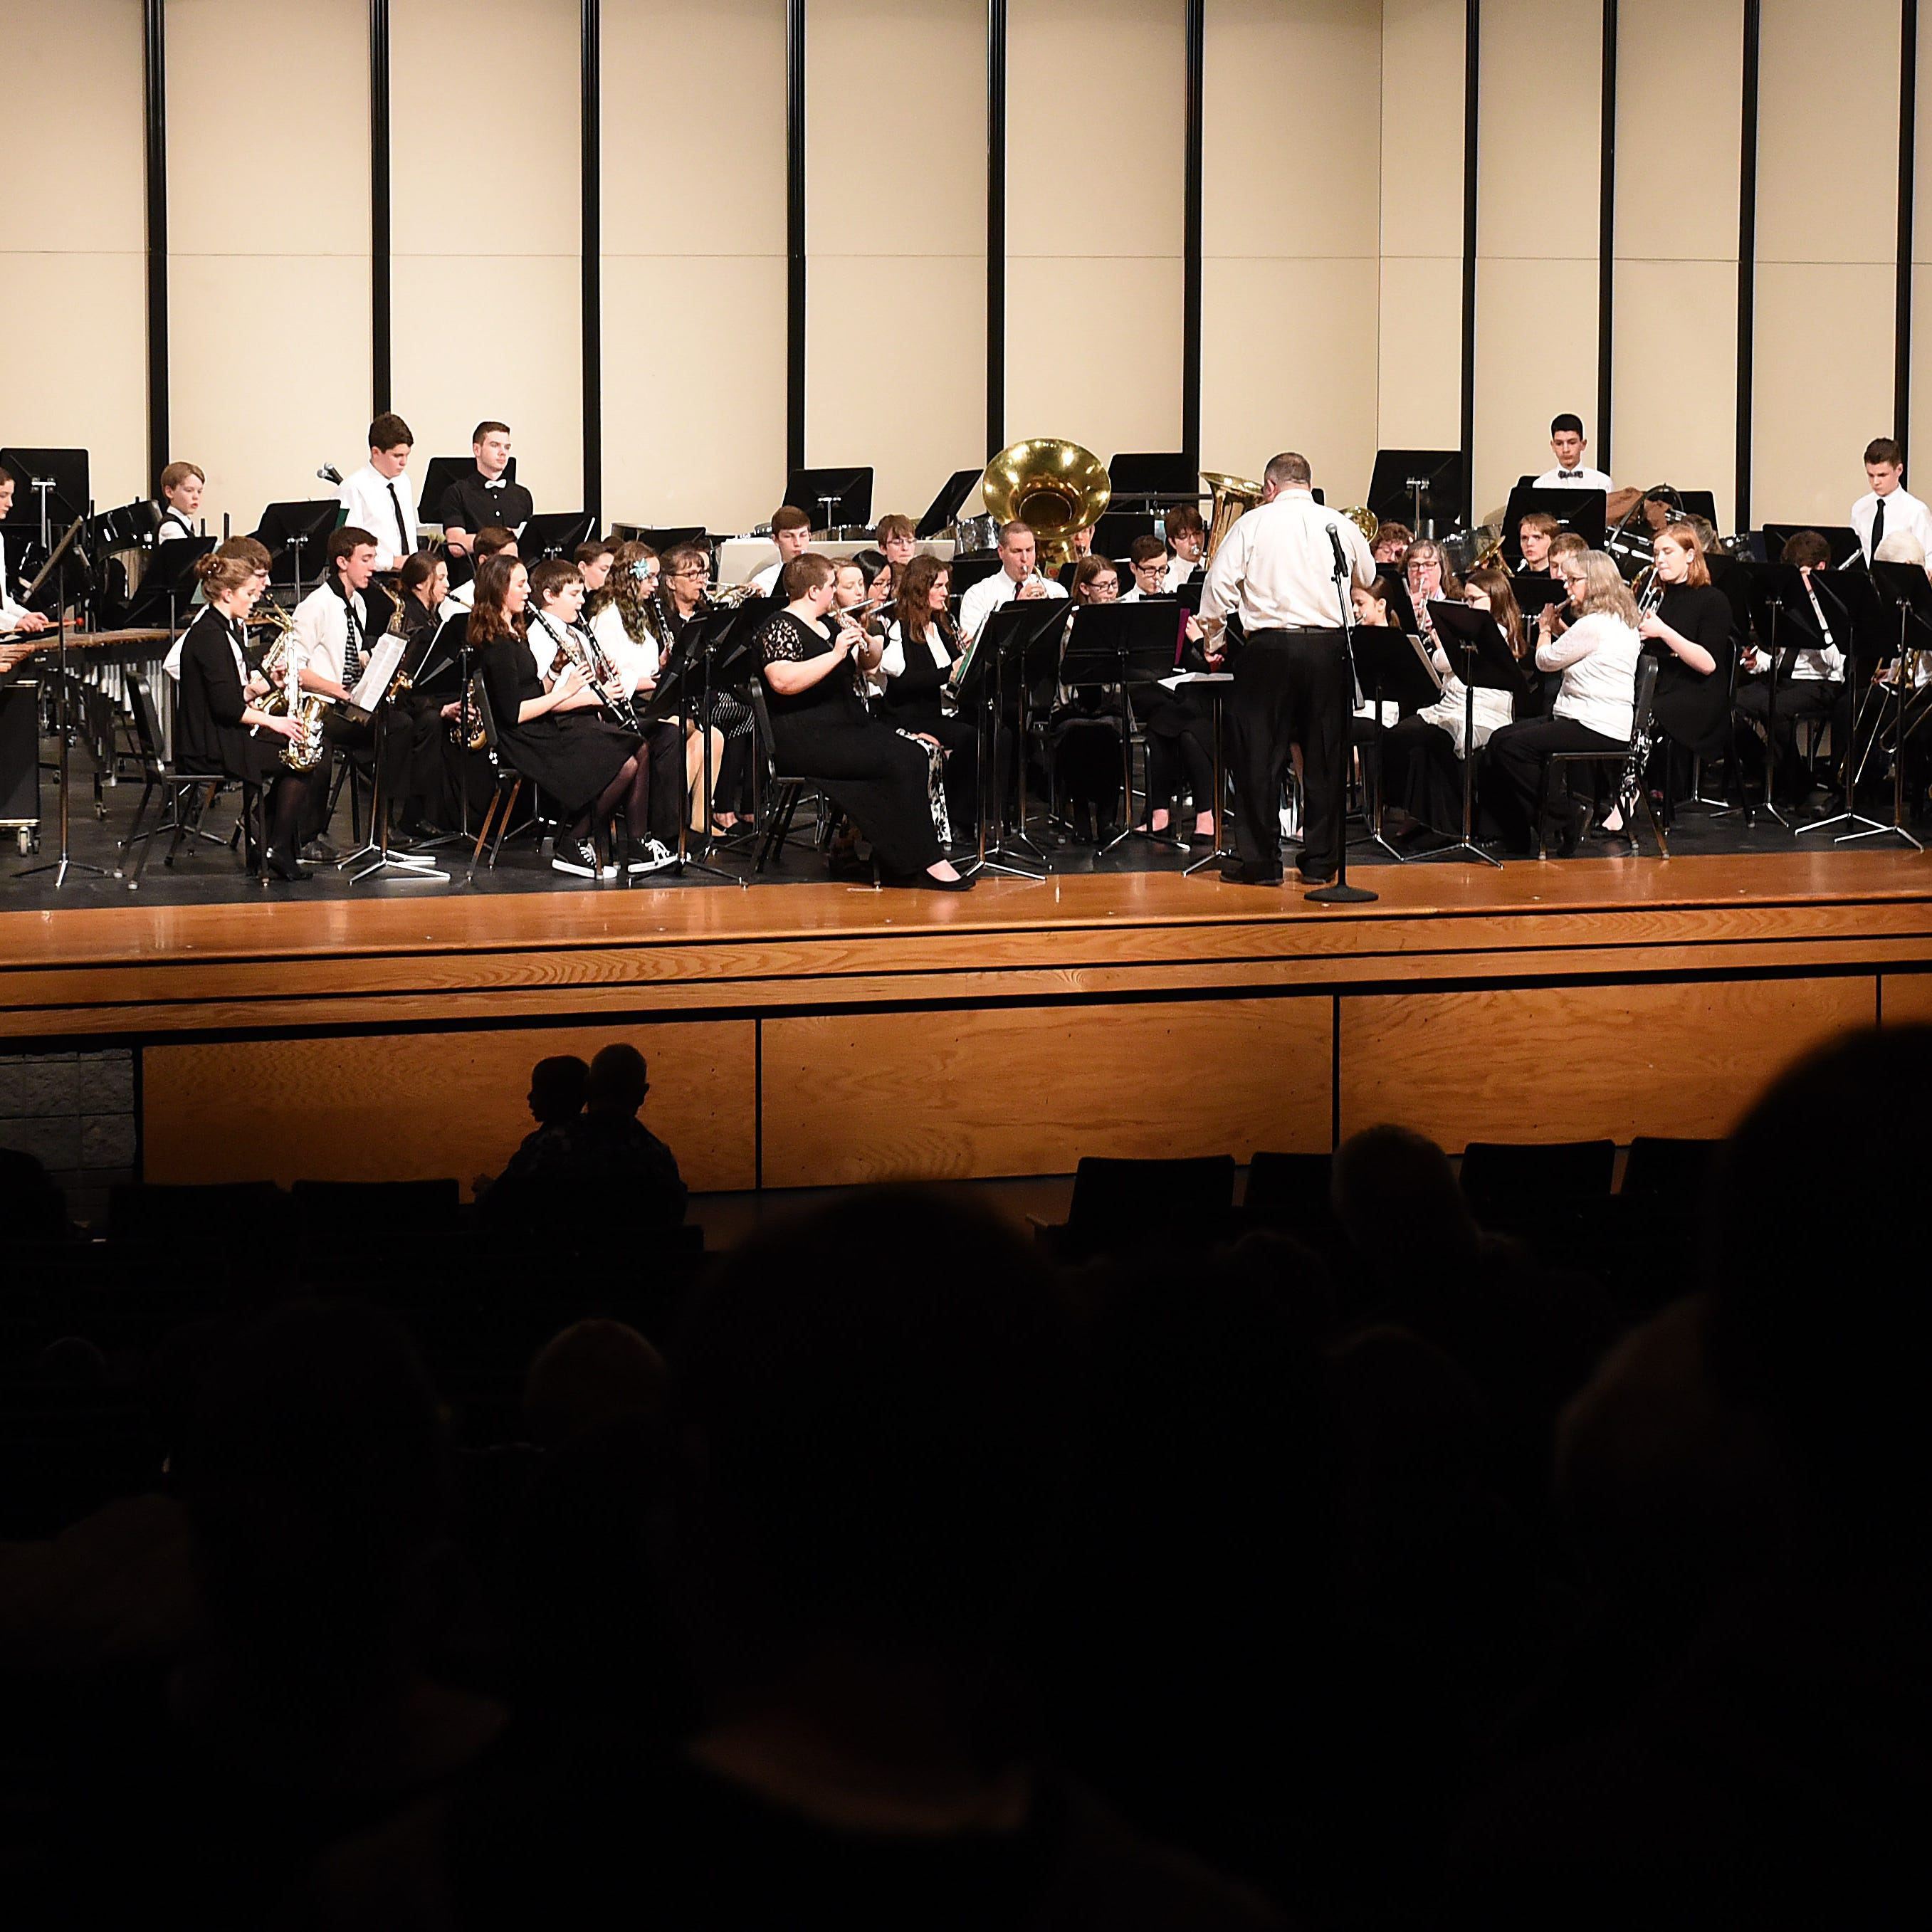 Licking County Homeschool Band celebrates 20th year